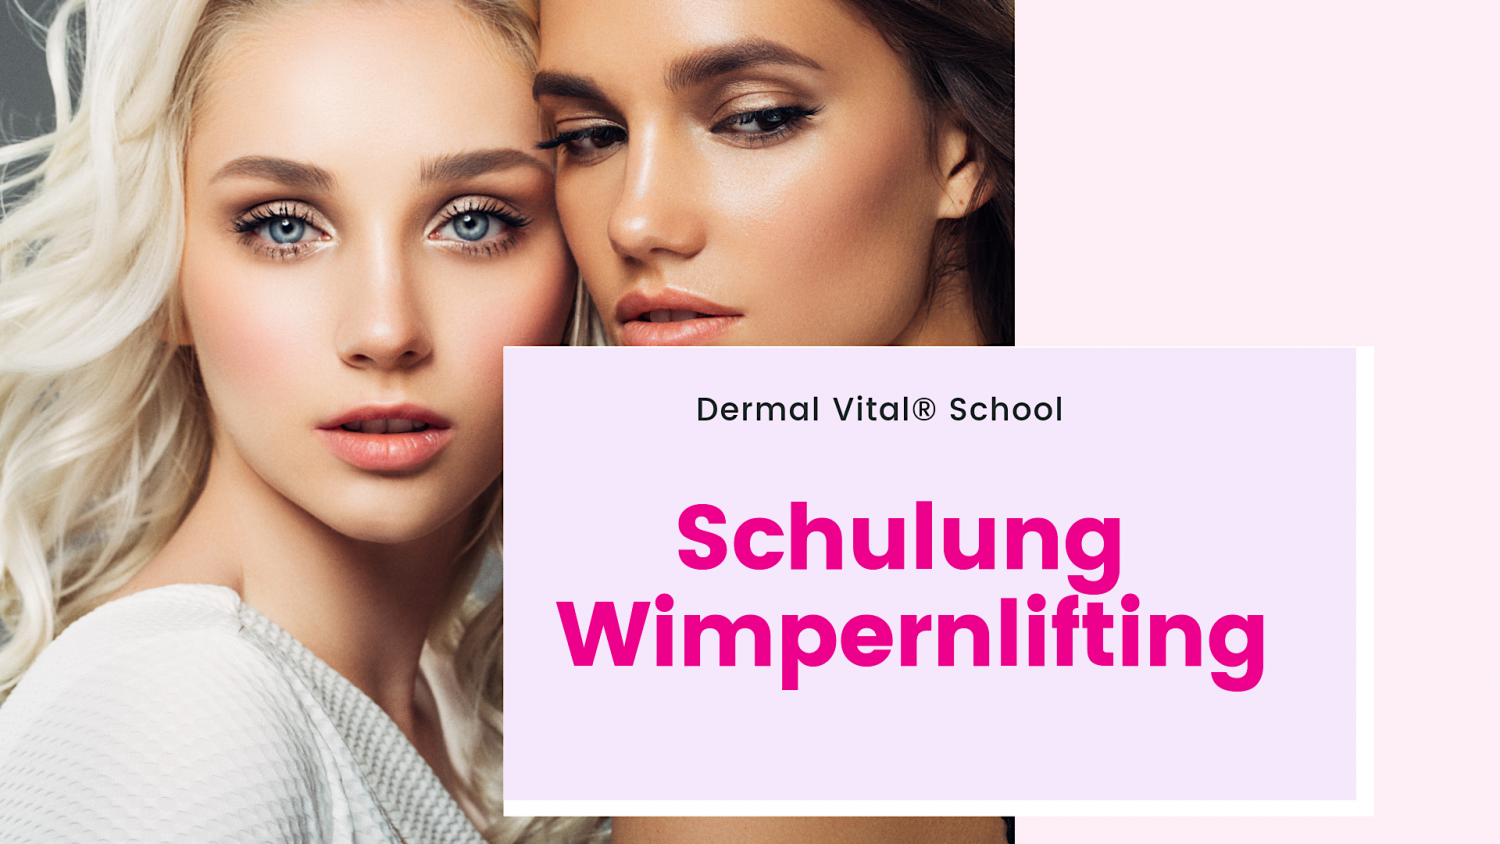 Wimpernlifting Schulung